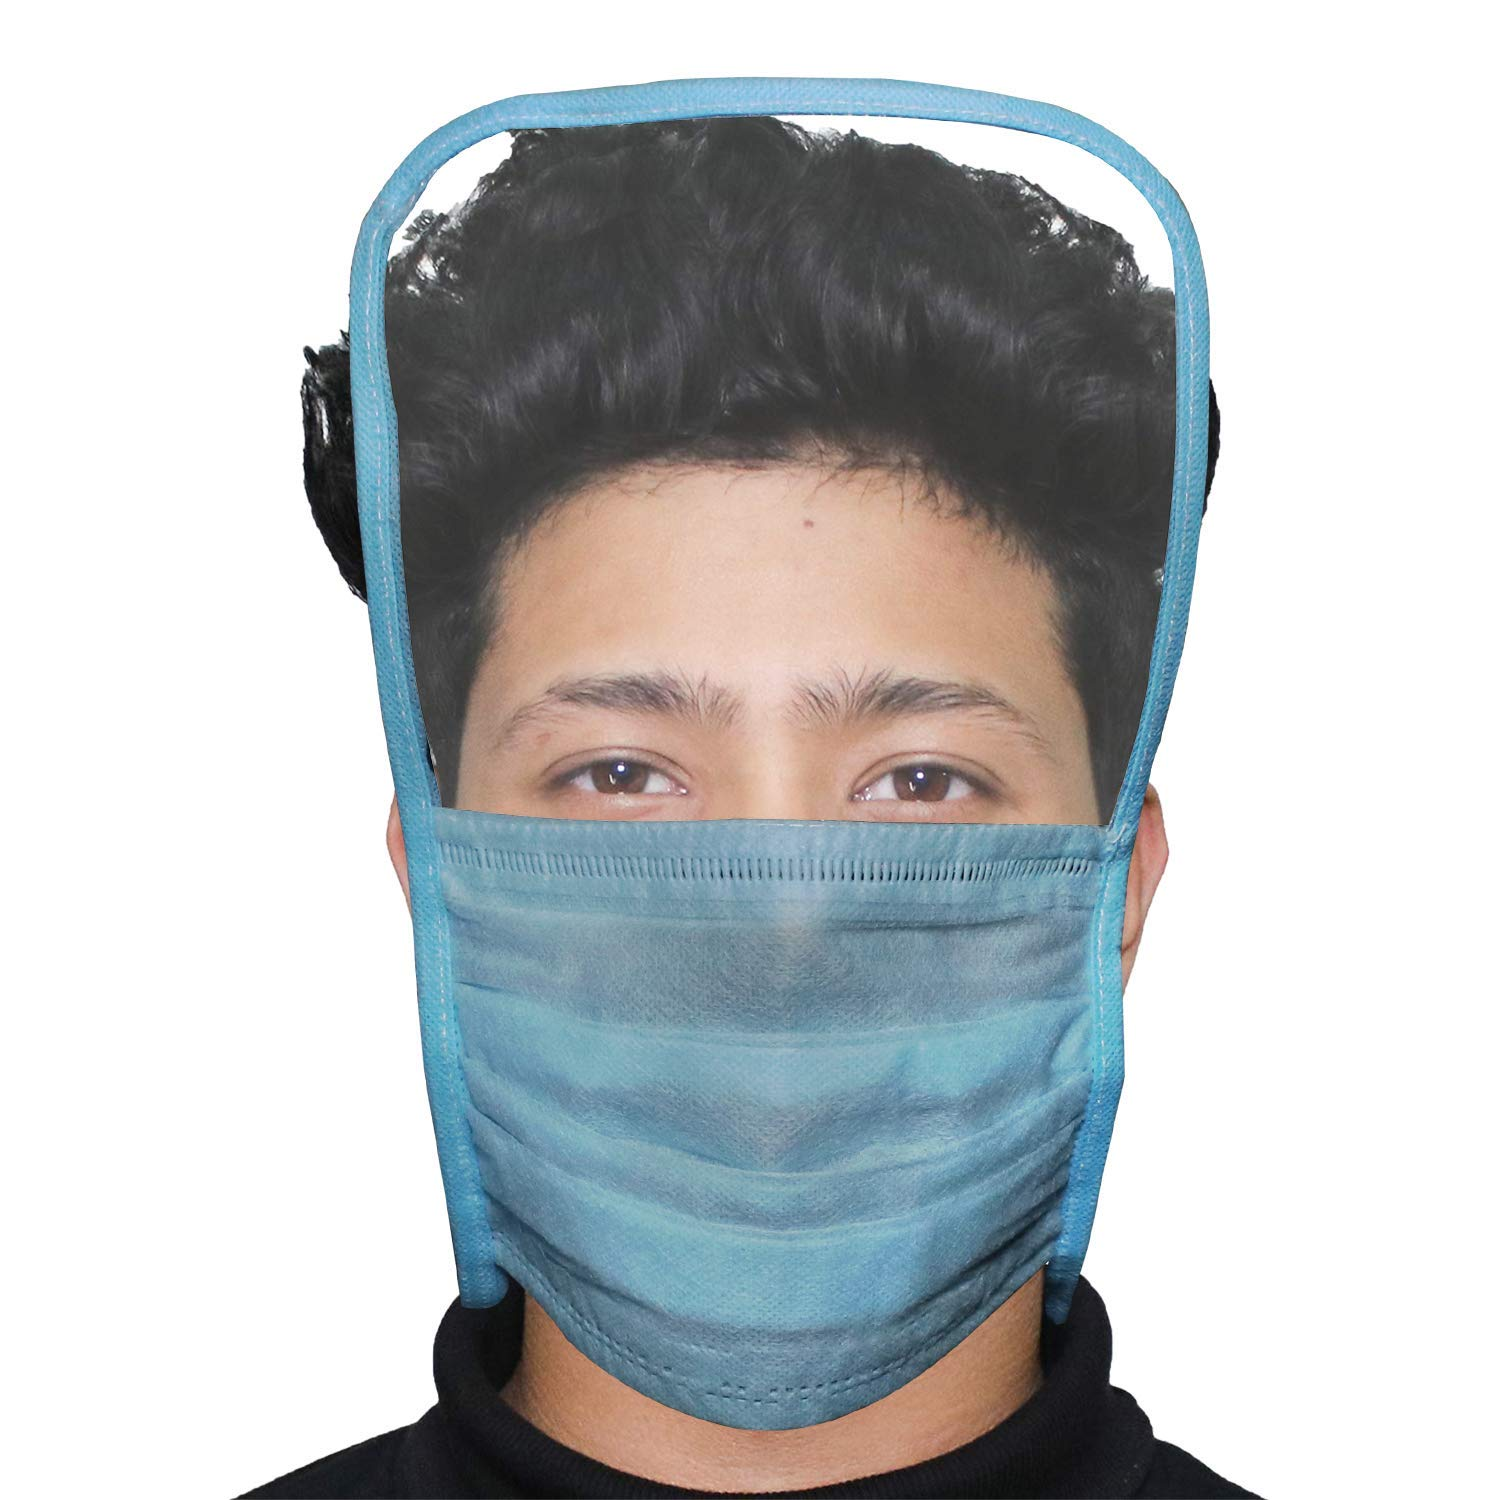 Motopack ORMFS01 Disposable 3 Ply Face Mask with Eye Shield Anti Spittle Splash Personal Protection for Medical & Outdoor (1 PC)